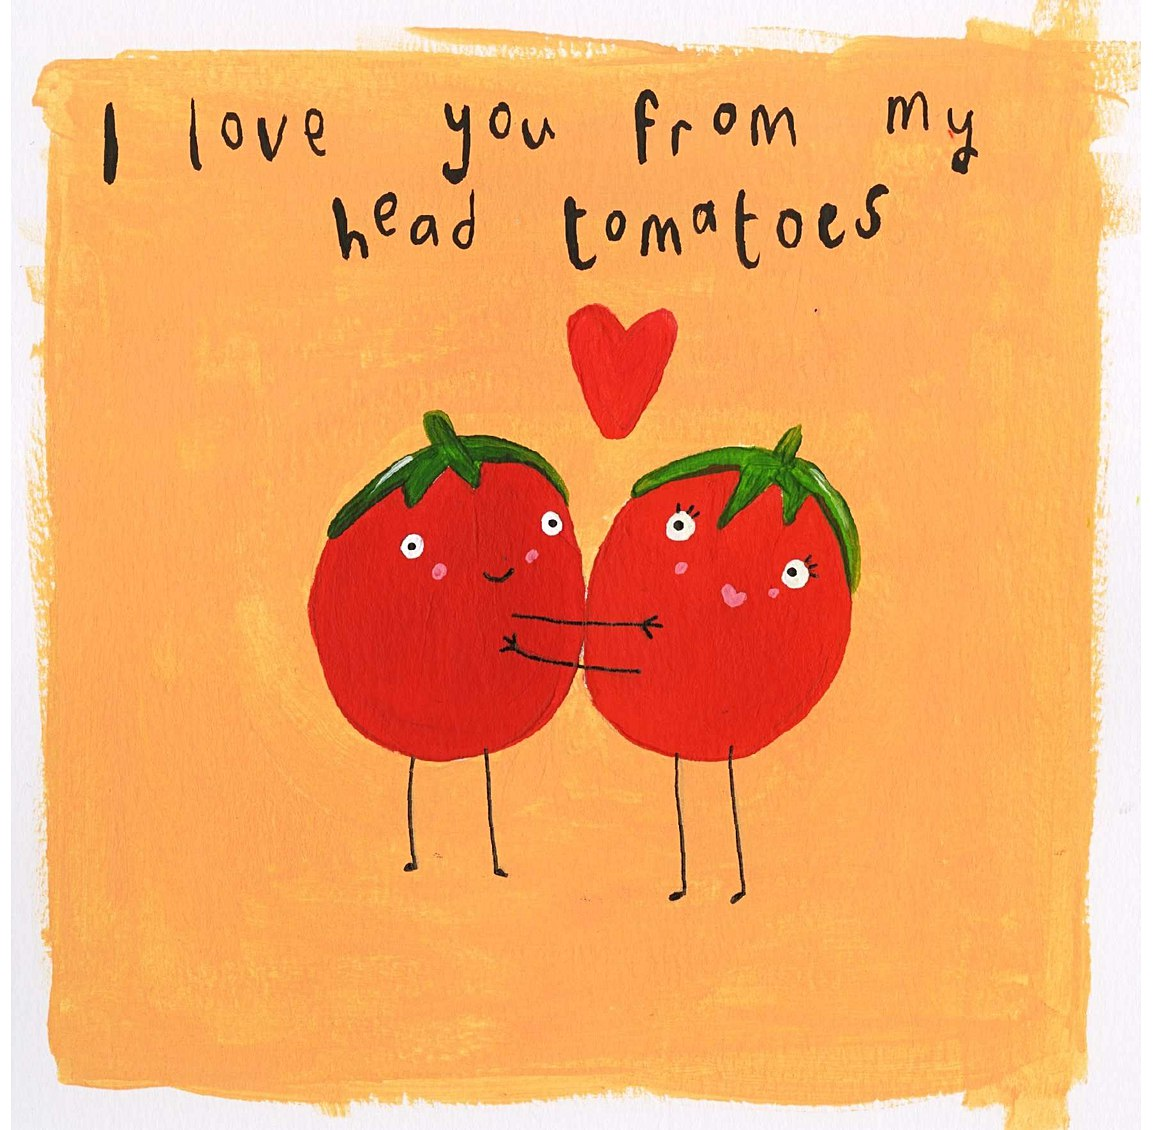 14 Sweet & Punny Valentine's Day Cards for your Love